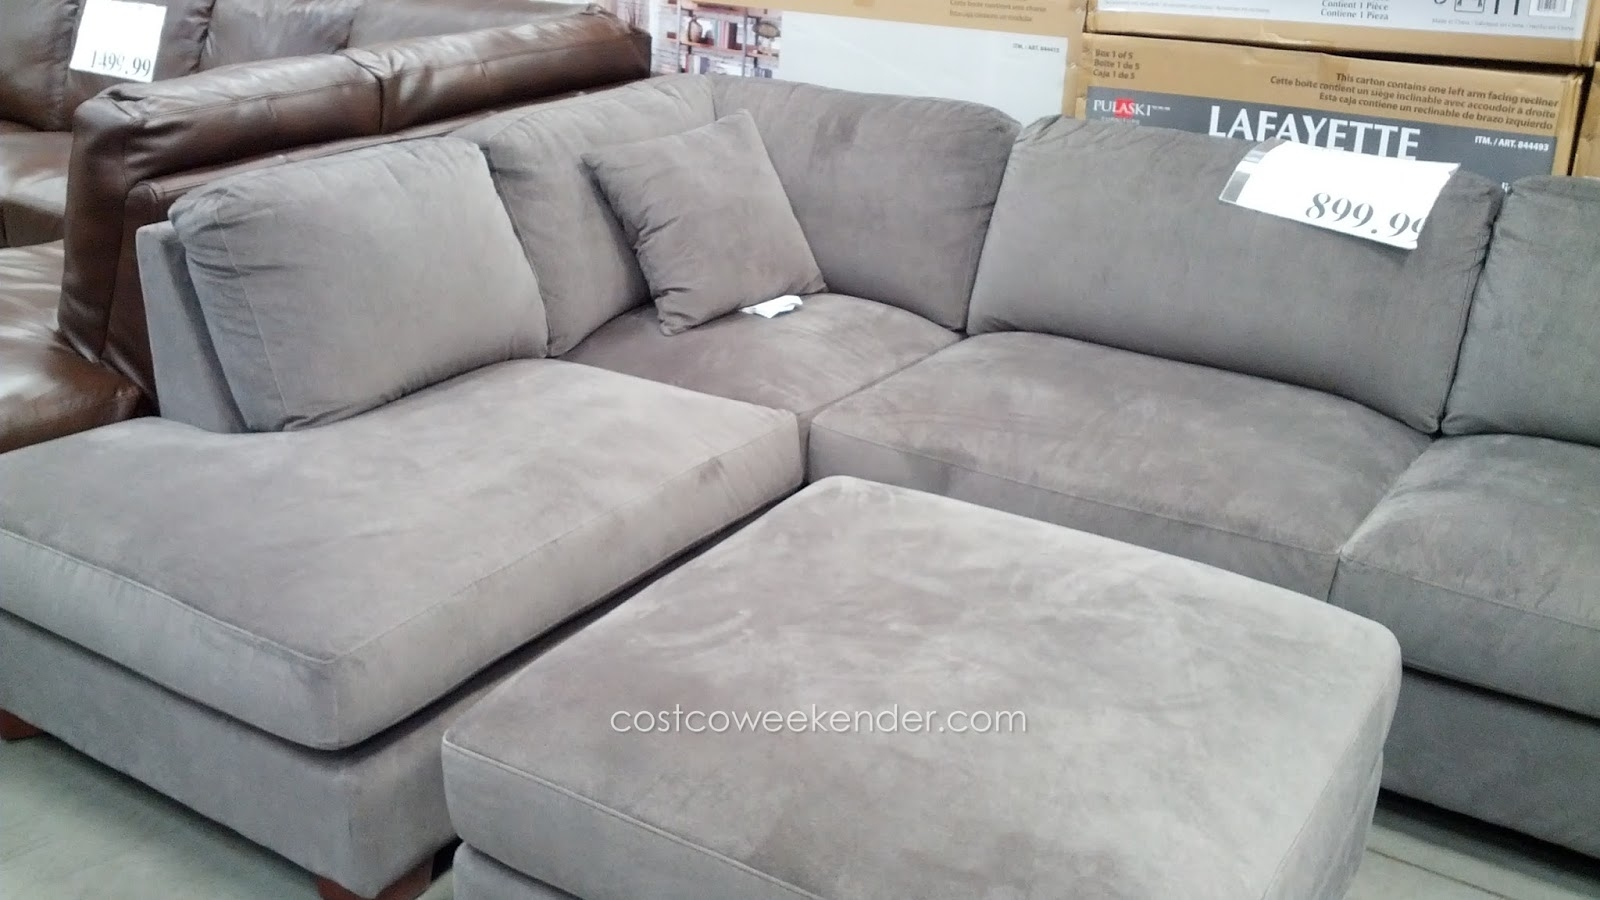 Emerald Home Furnishings Bianca 3 Piece Sectional Set | Costco Weekender With Cohen Down 2 Piece Sectionals (Image 8 of 25)